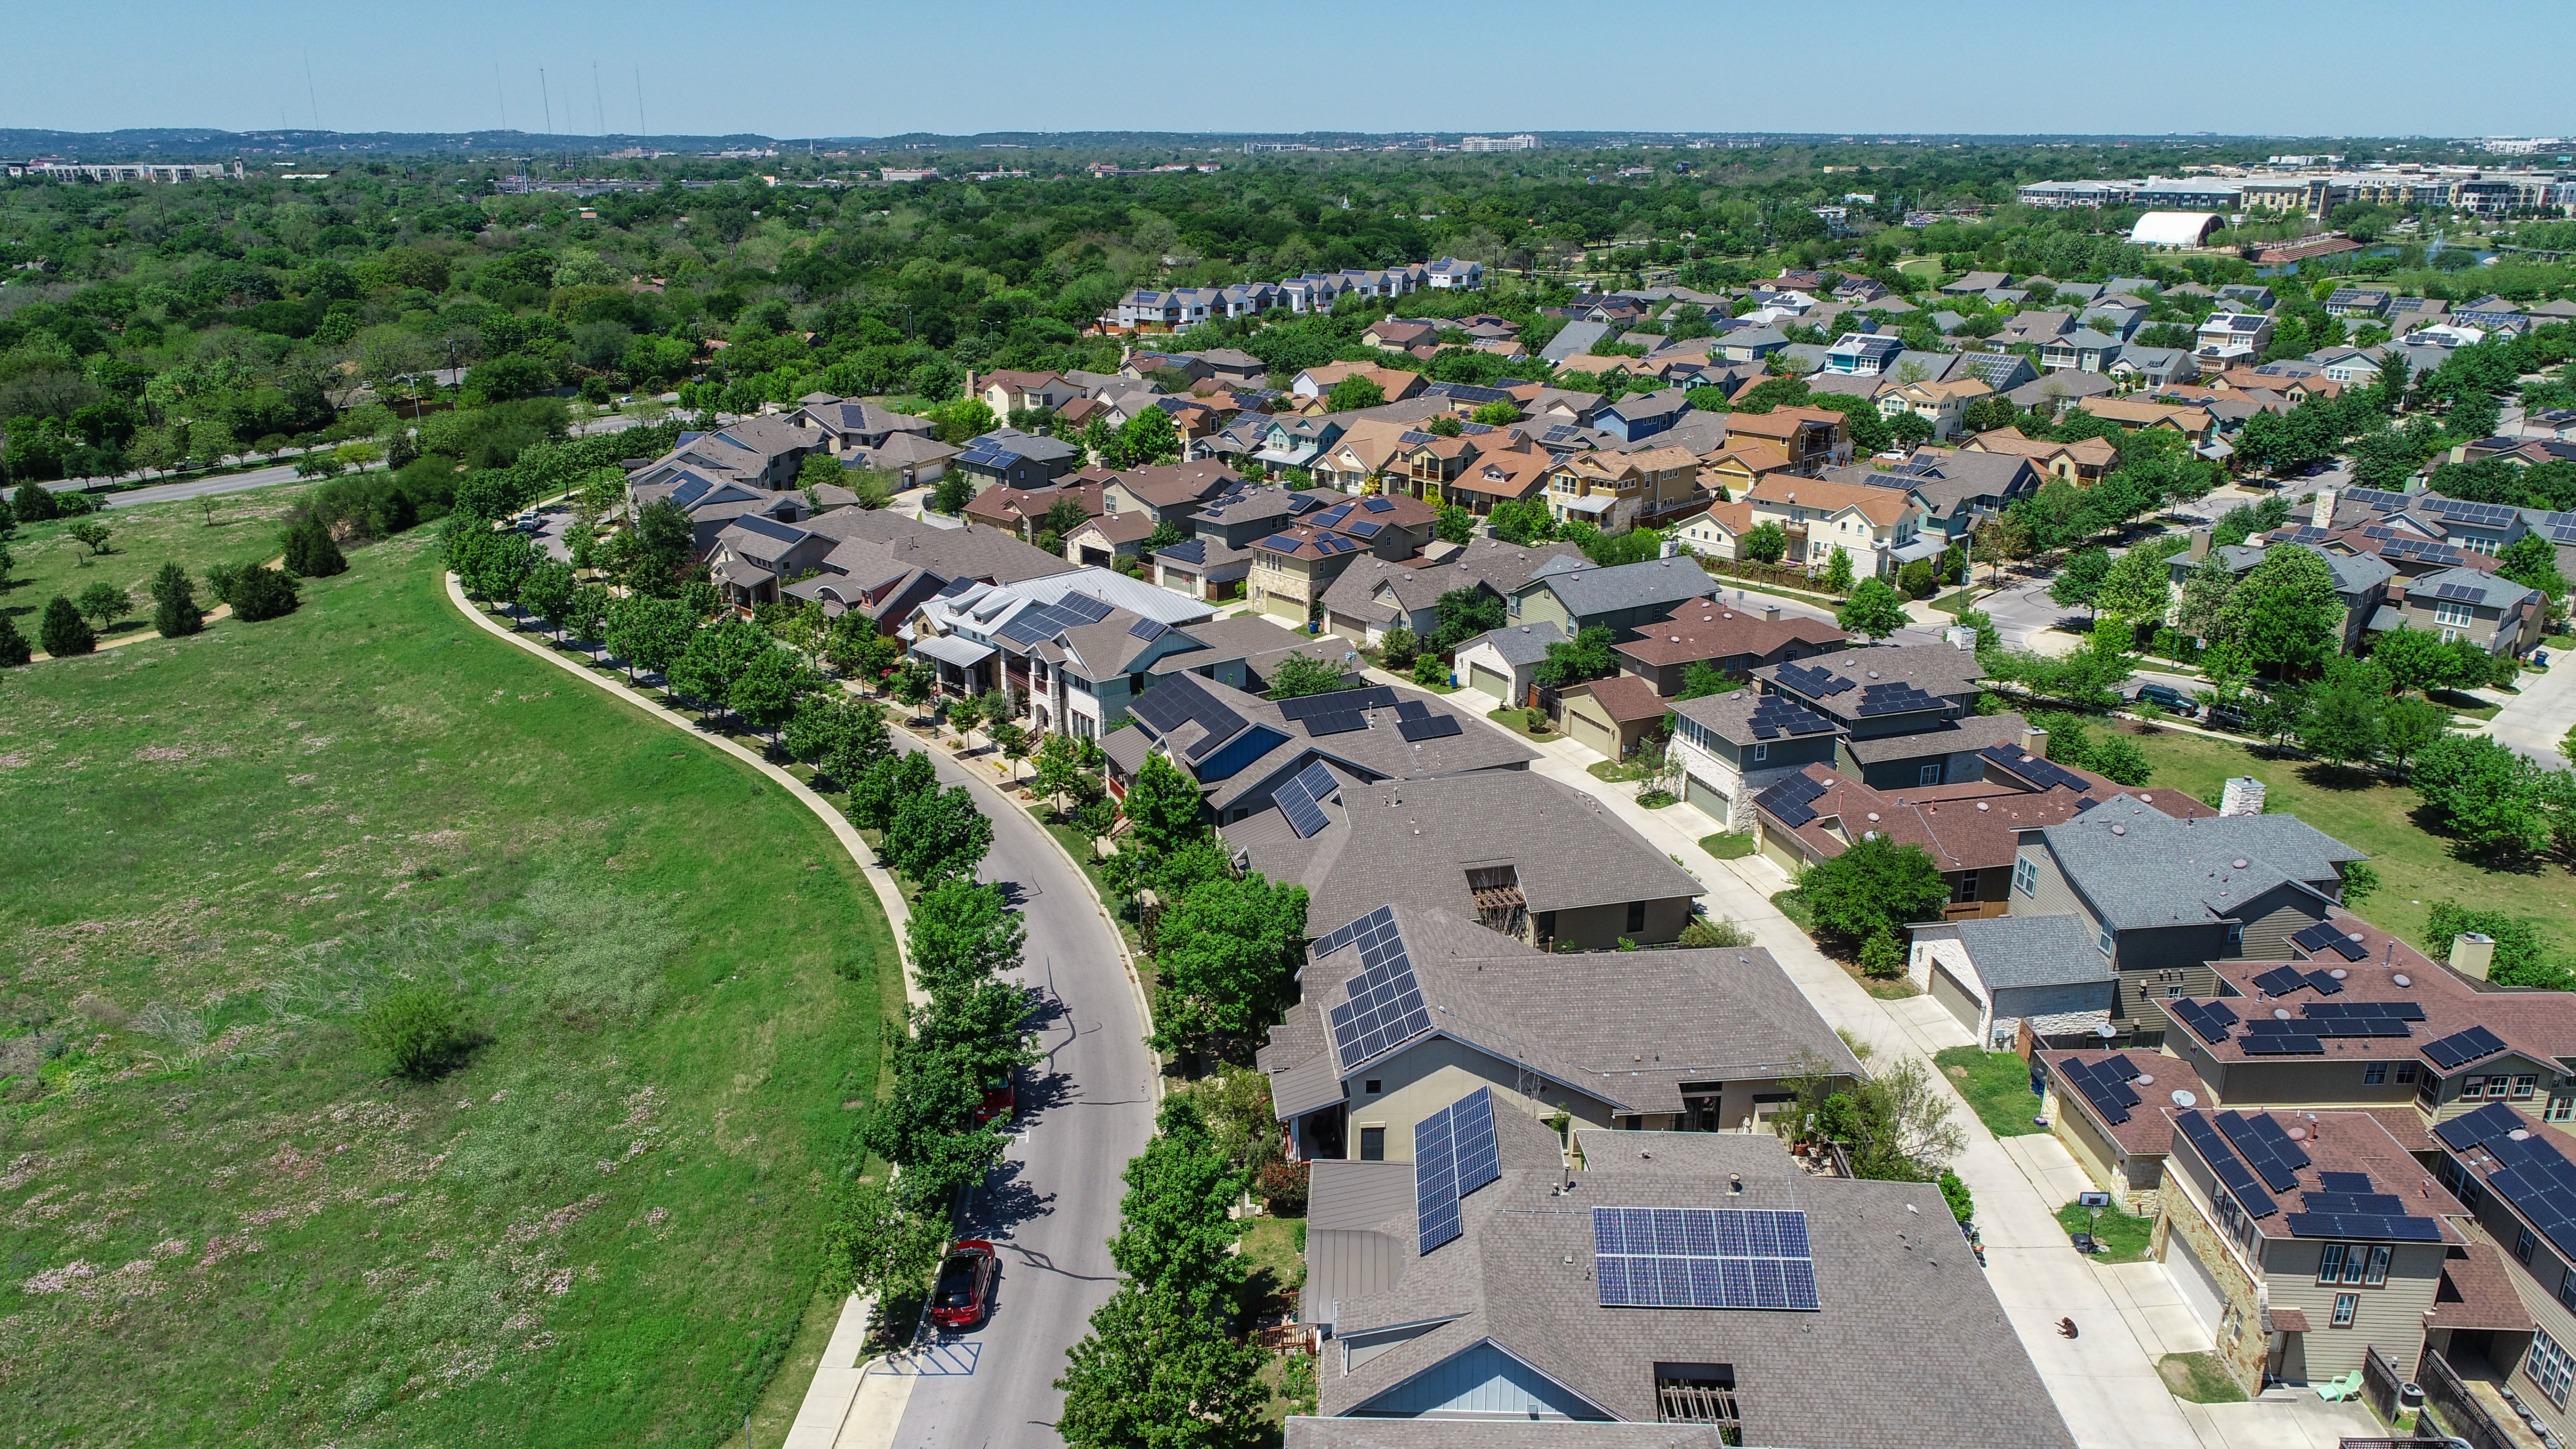 Solar powered neighborhood